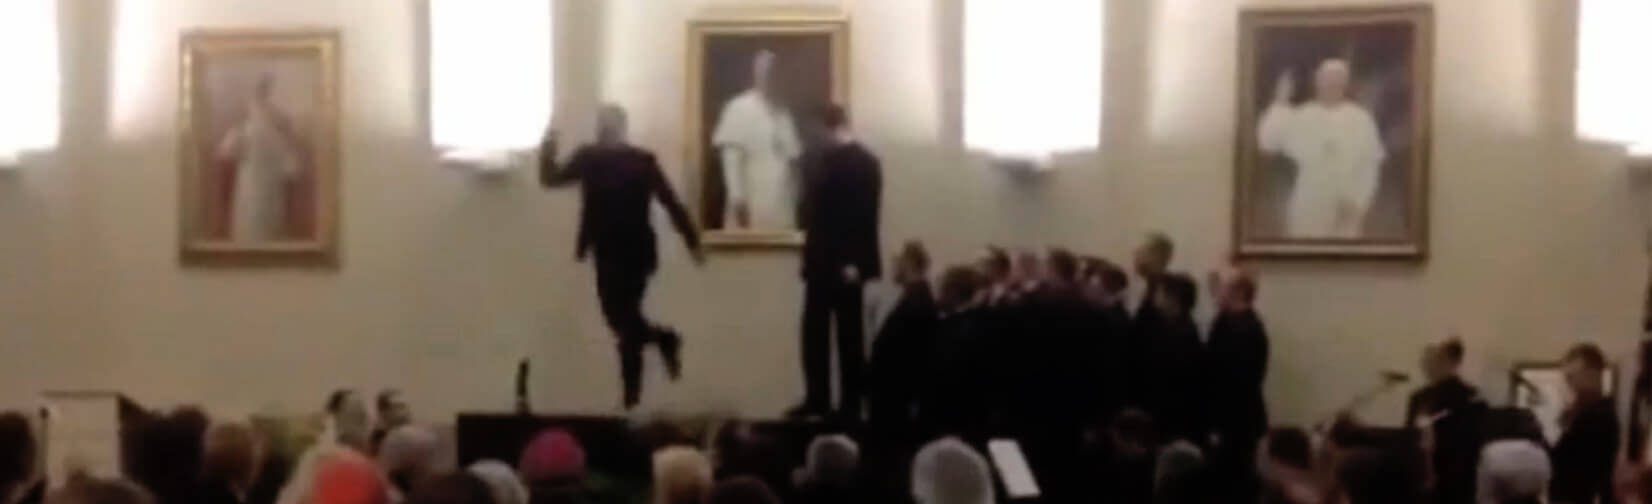 american-tap-and-irish-dancing-priests-go-viral